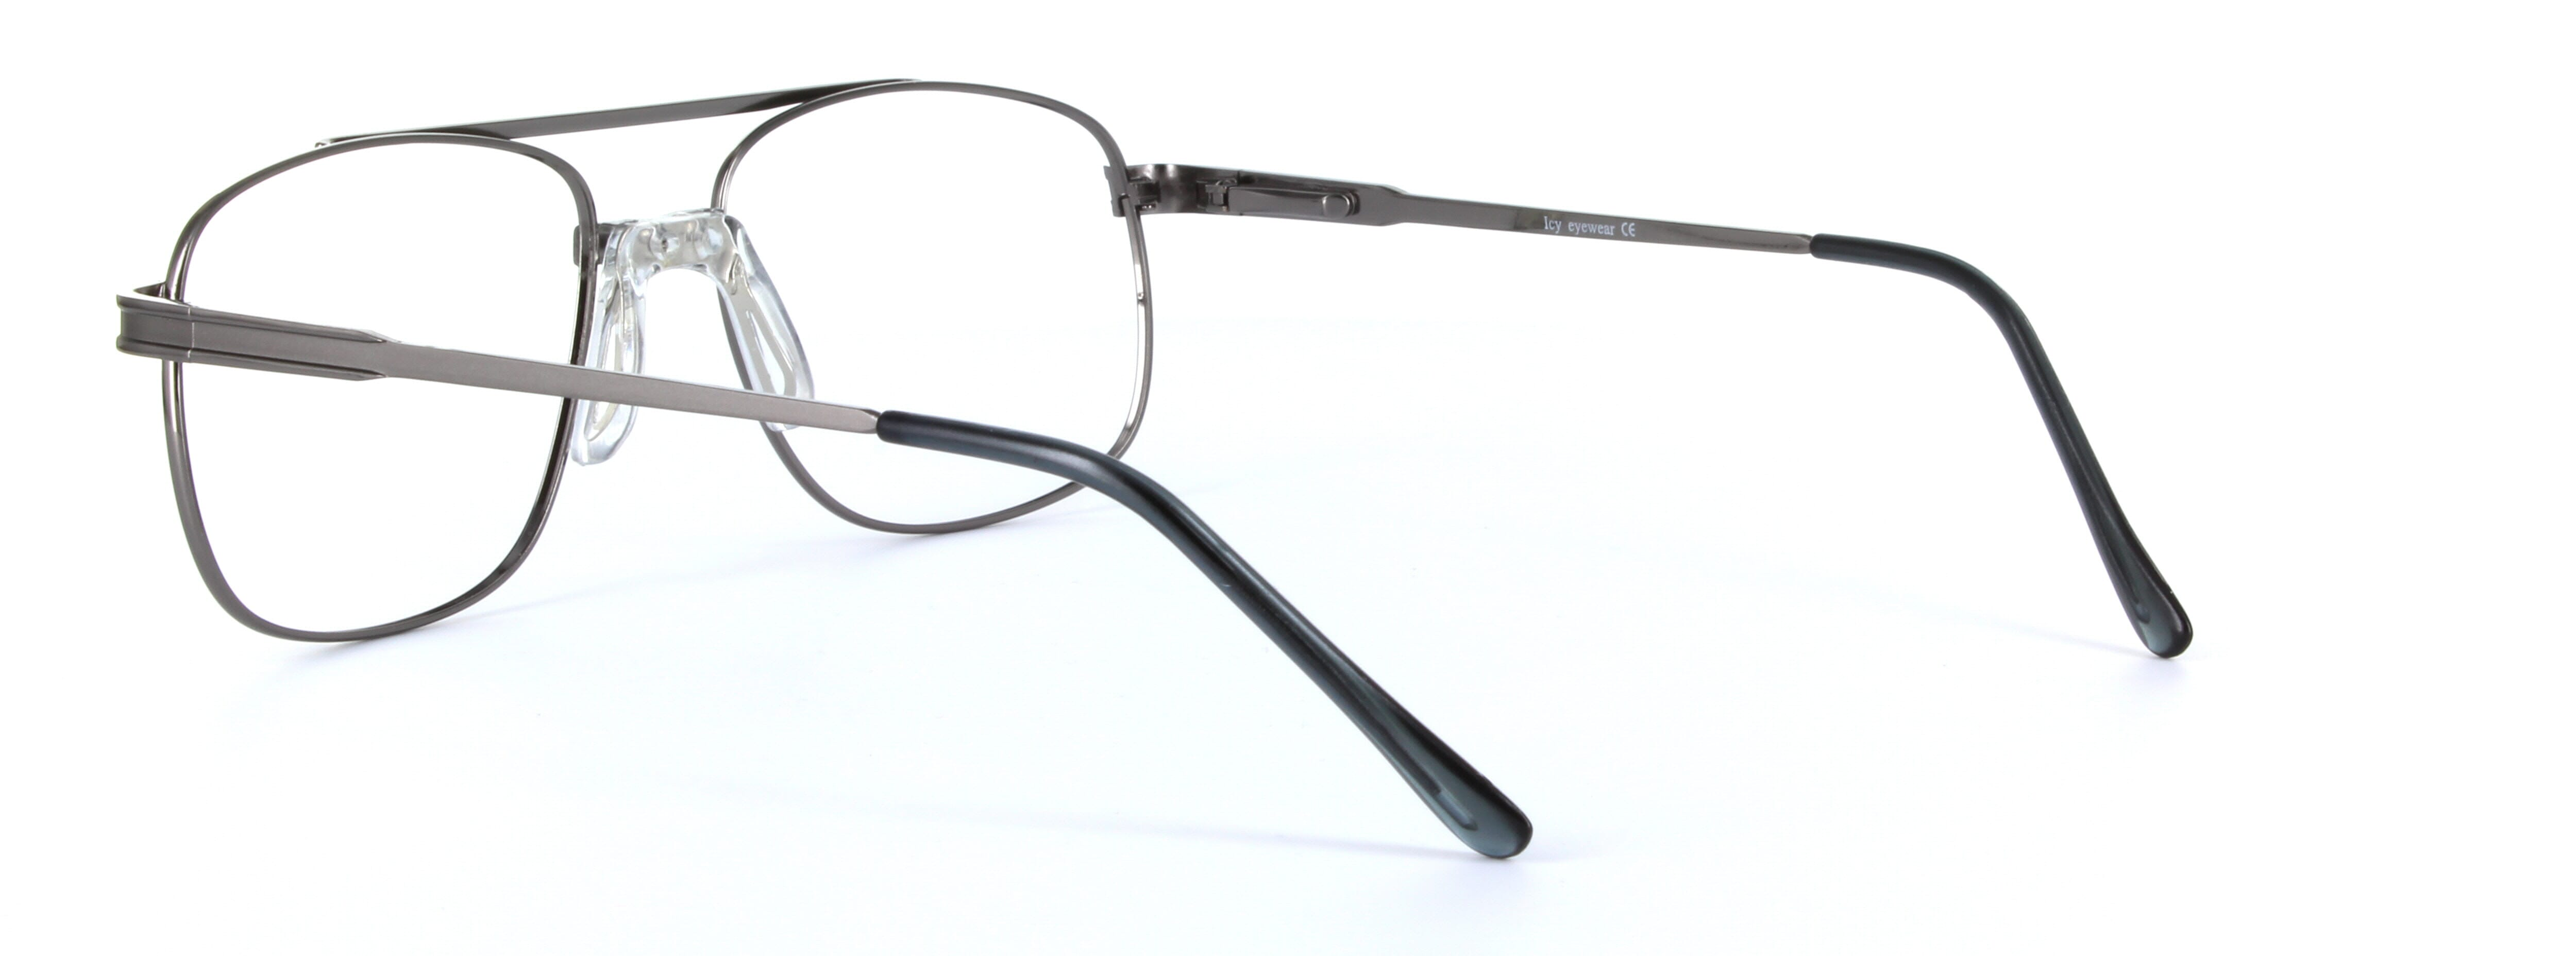 Glasses And Frame Shape : Aviator Shaped Eyewear Glasses Frames And Spectacles